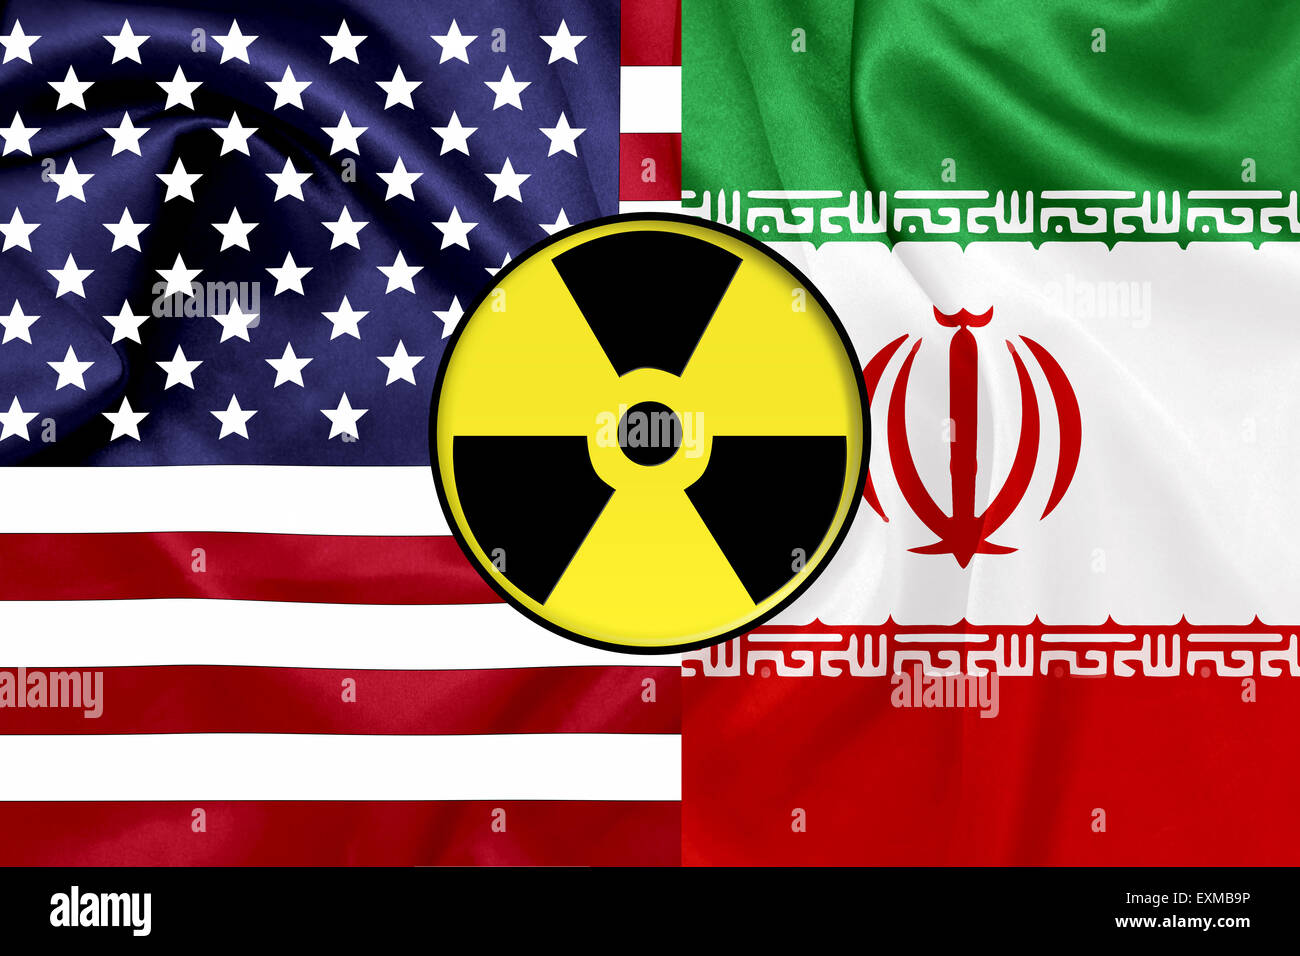 Flags of United States and Iran with Nuclear icon - Stock Image